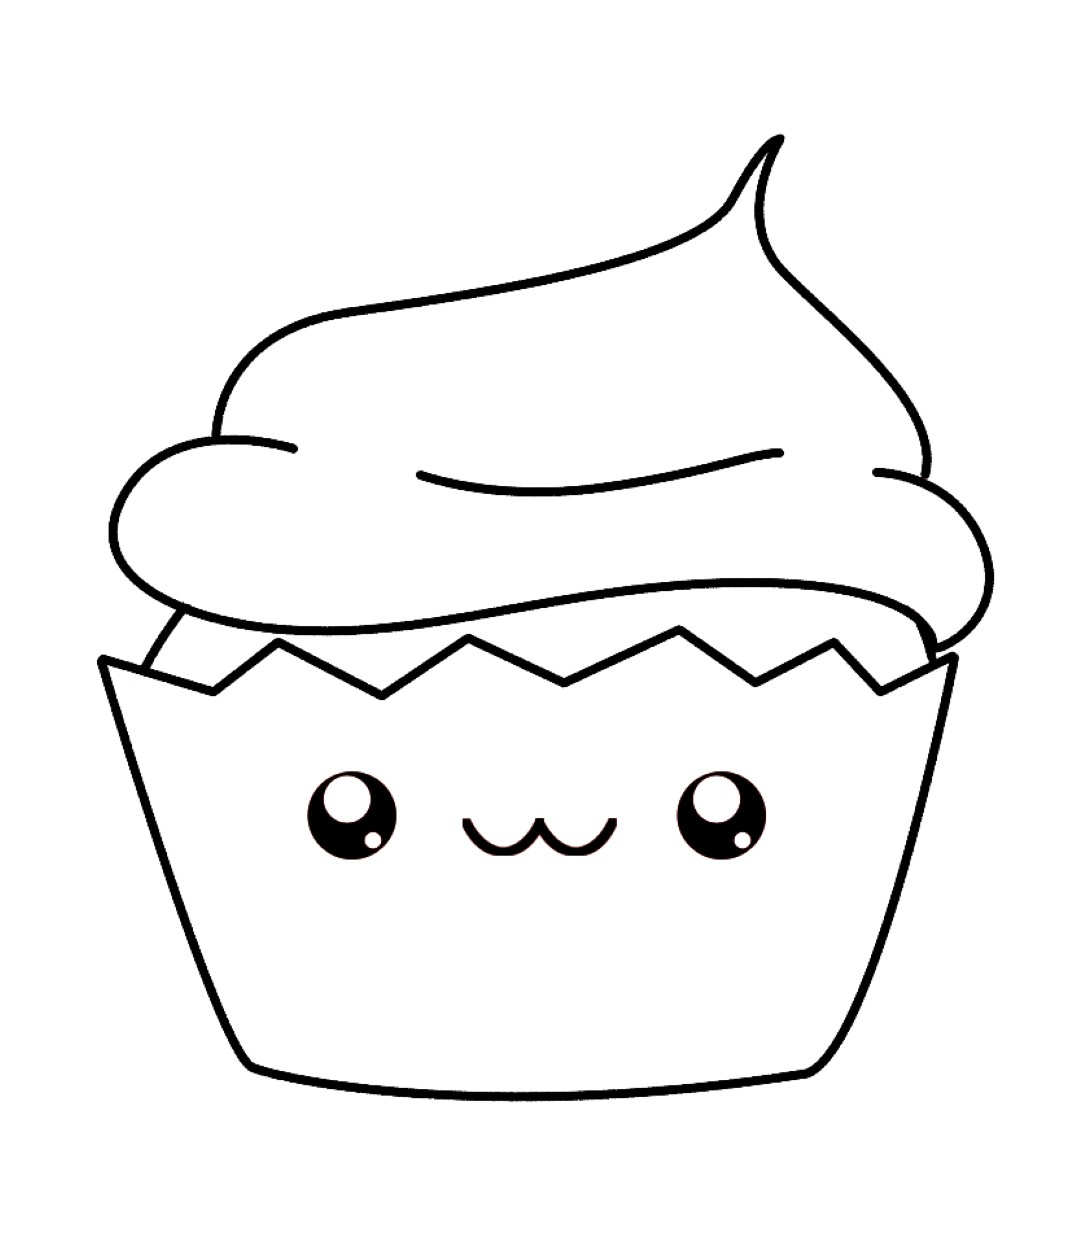 1080x1258 Cute Cupcake Coloring Pages For Kids